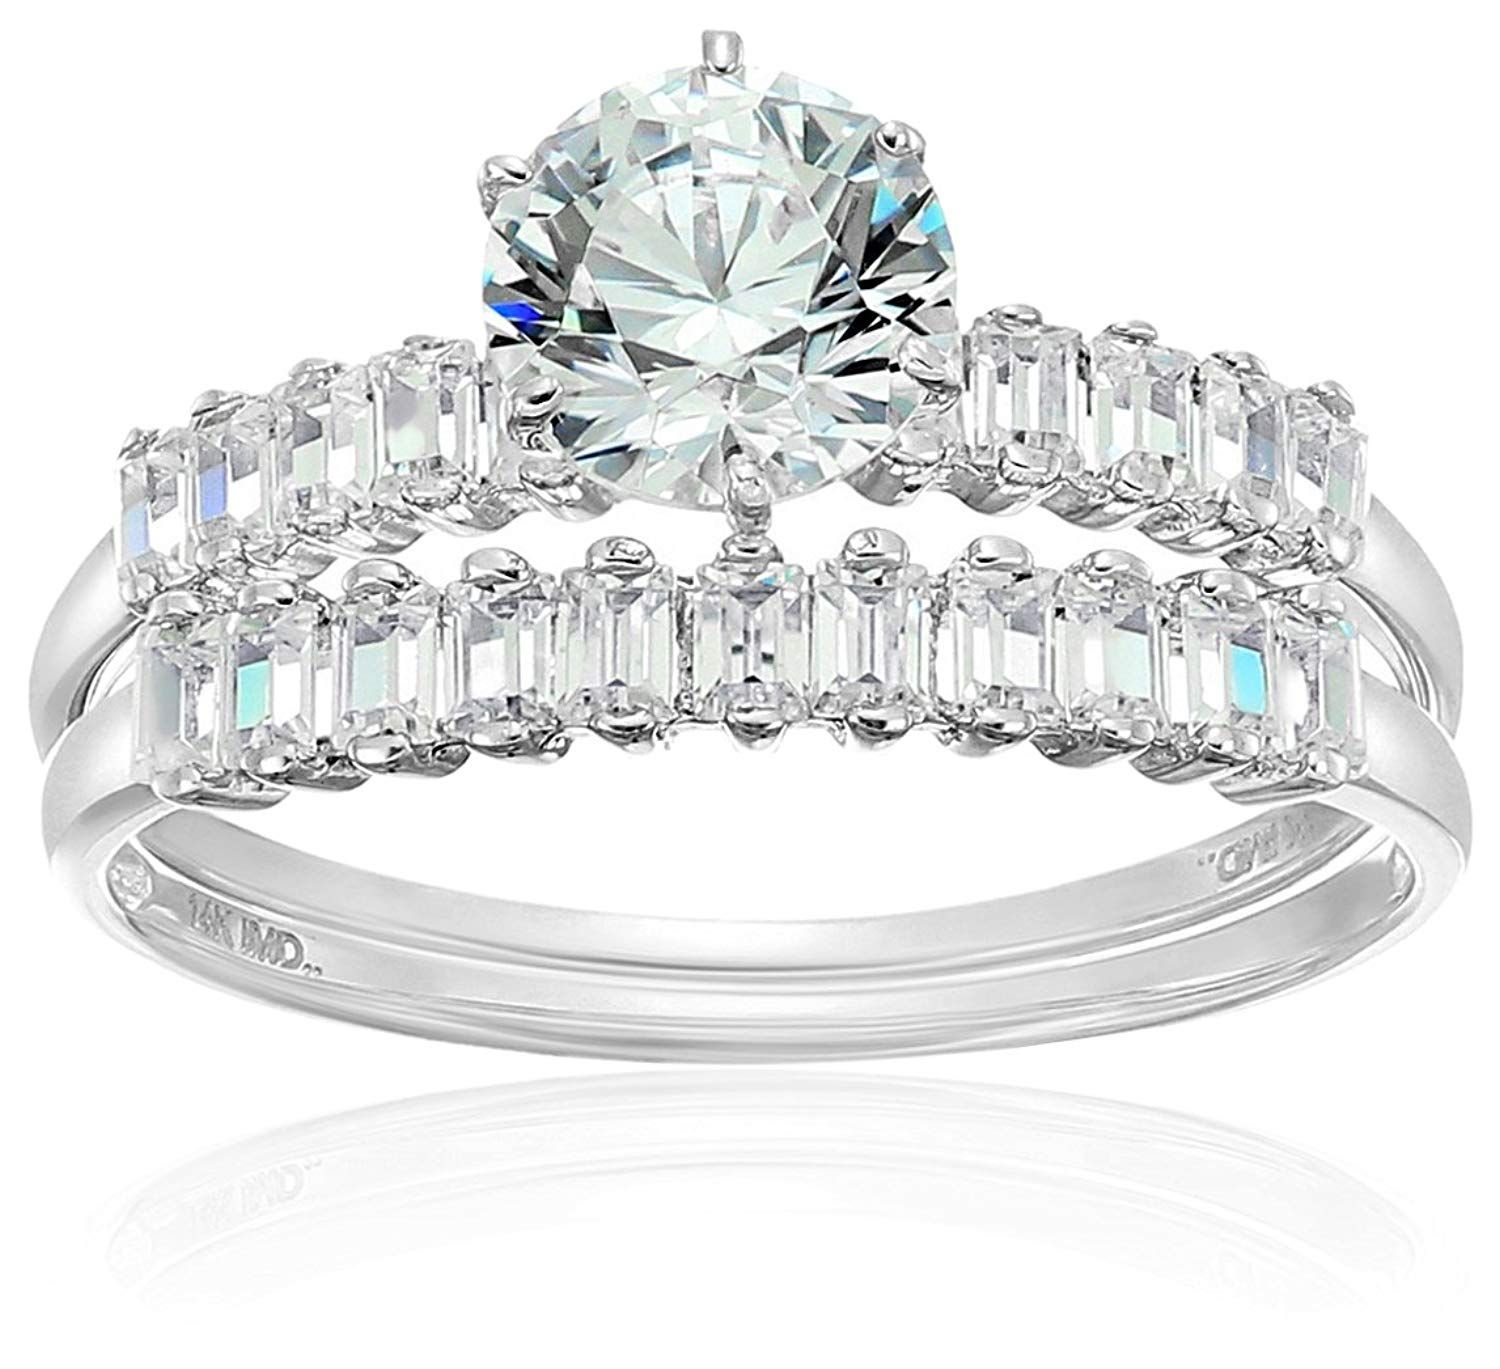 14k White Gold Cubic Zirconia 2Piece Engagement Ring